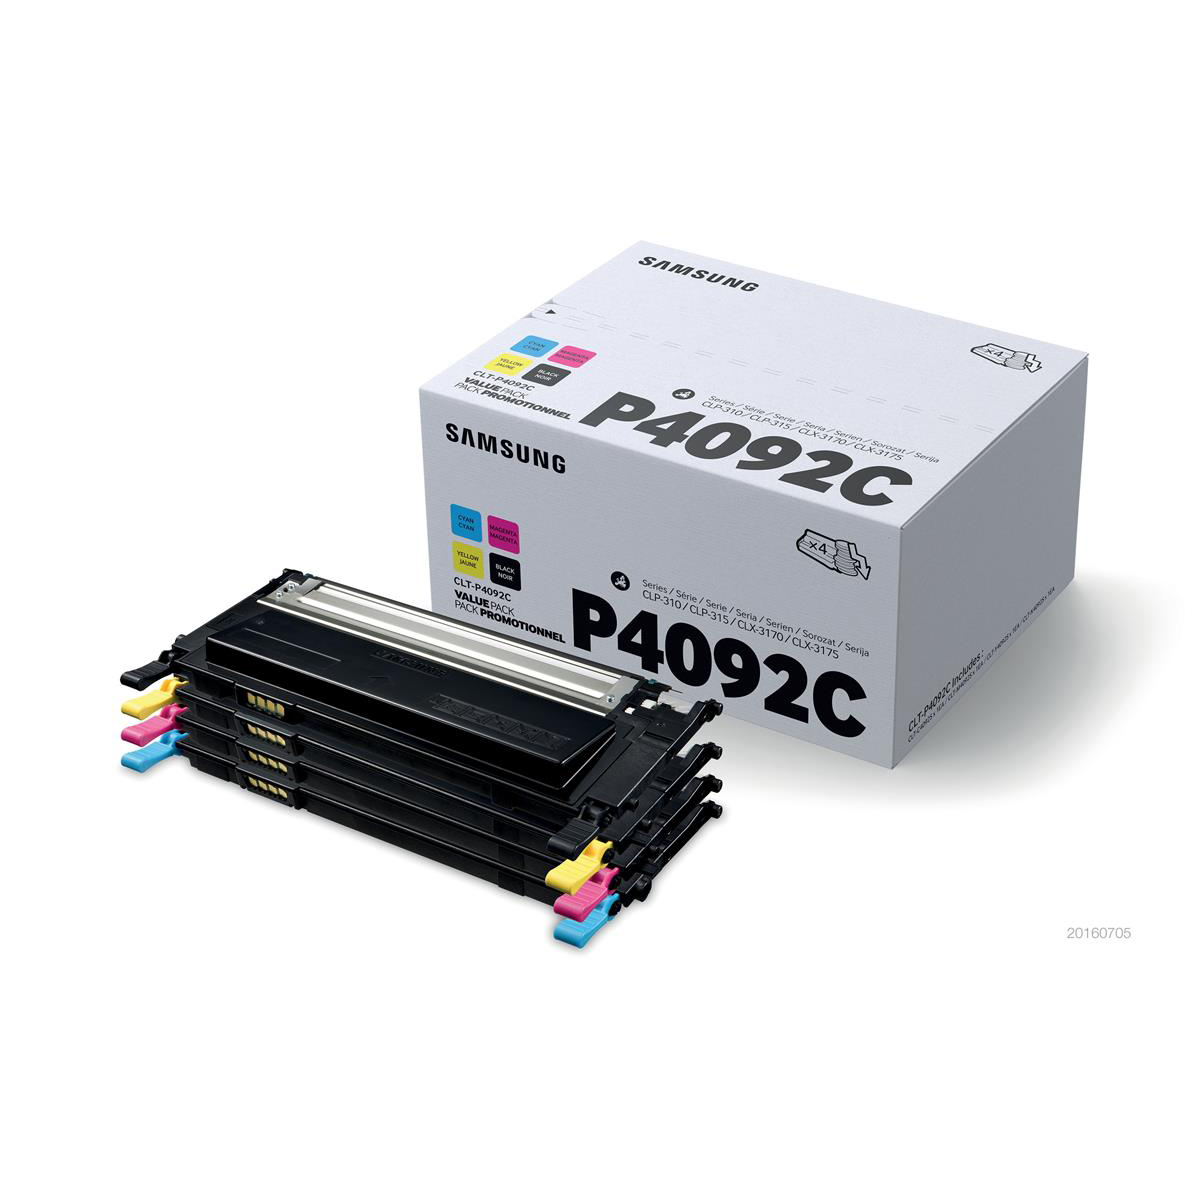 Samsung Laser Toner Value Pack Page Life 4500pp Black/Cyan/Magenta/Yellow Ref CLT-P4092C/ELS Pack 4